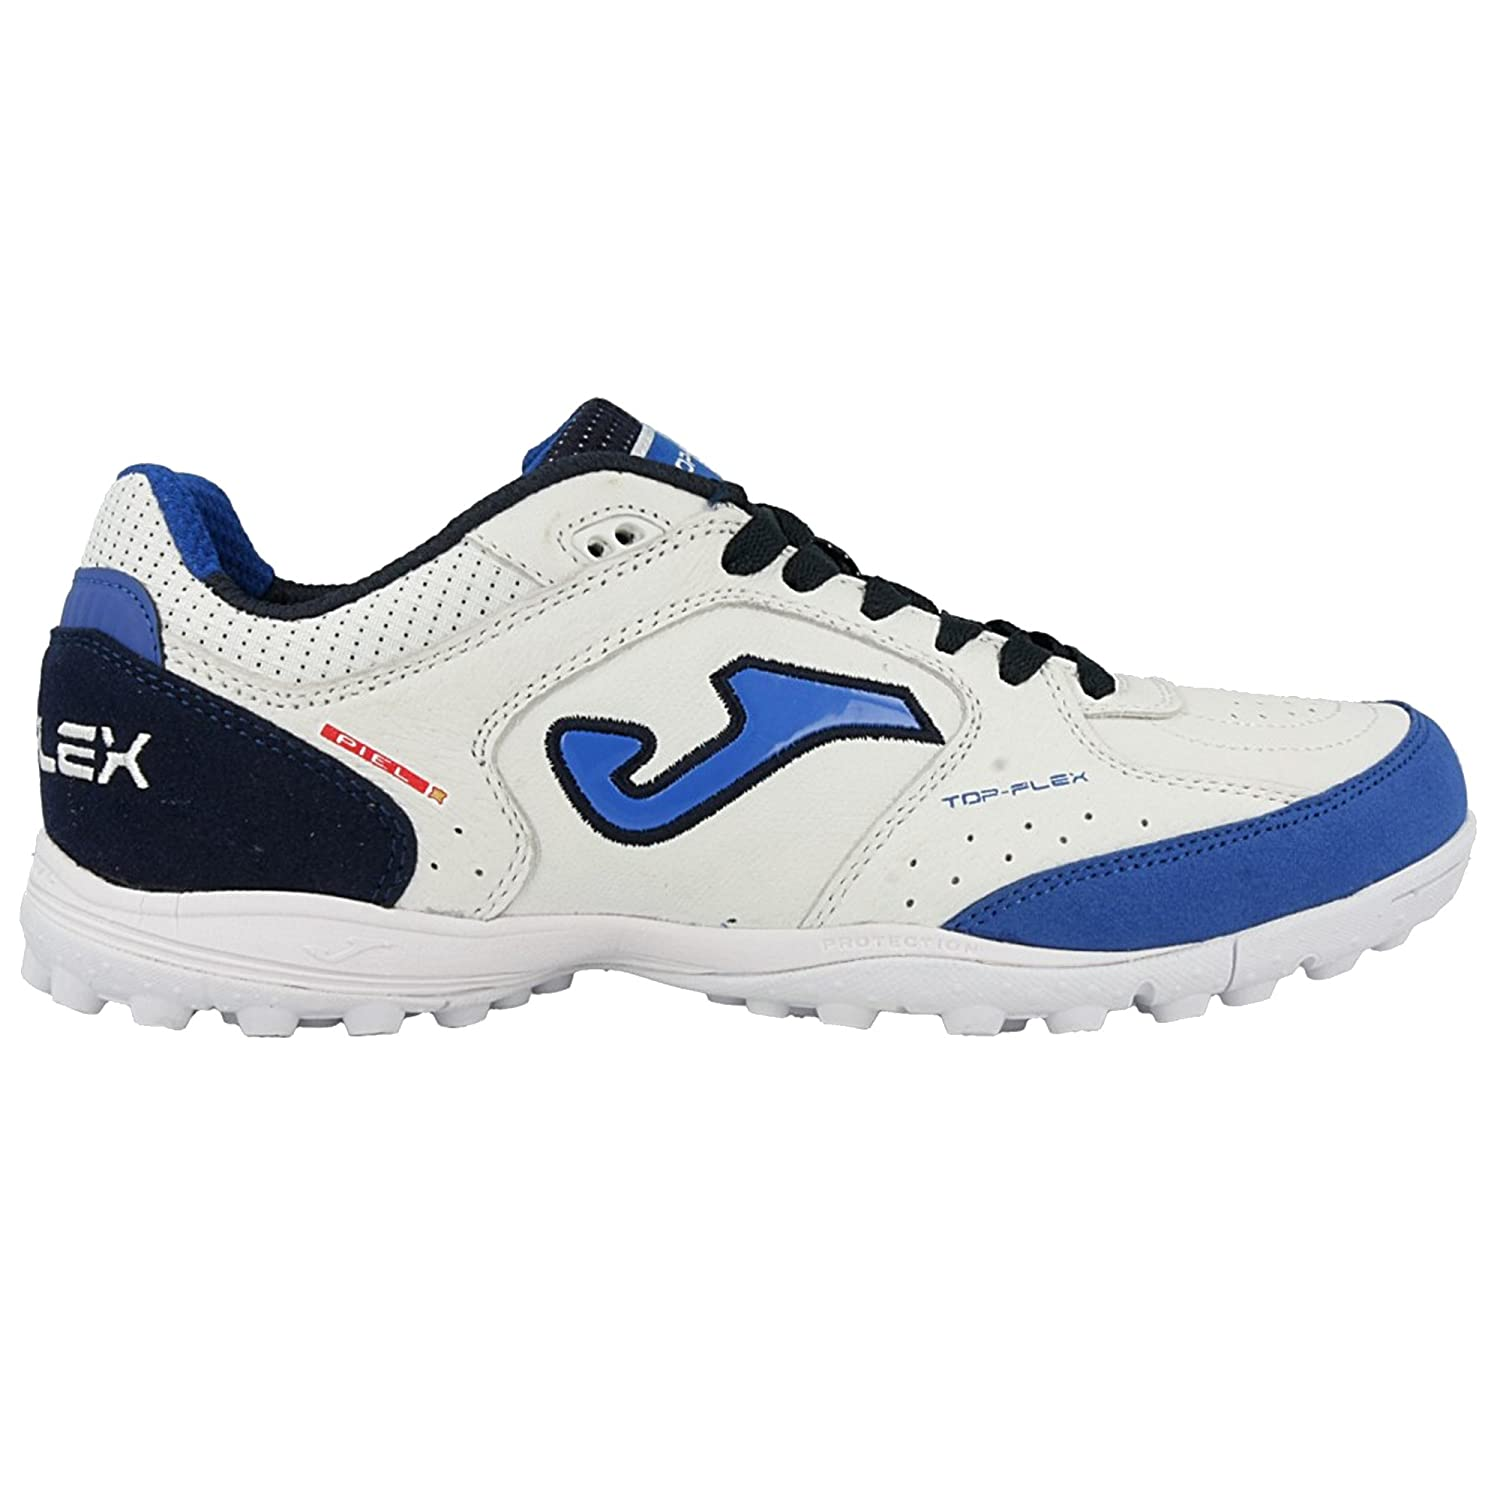 Scarpe Calcetto Joma Top Flex 820 White/Blue Turf Taglia 41